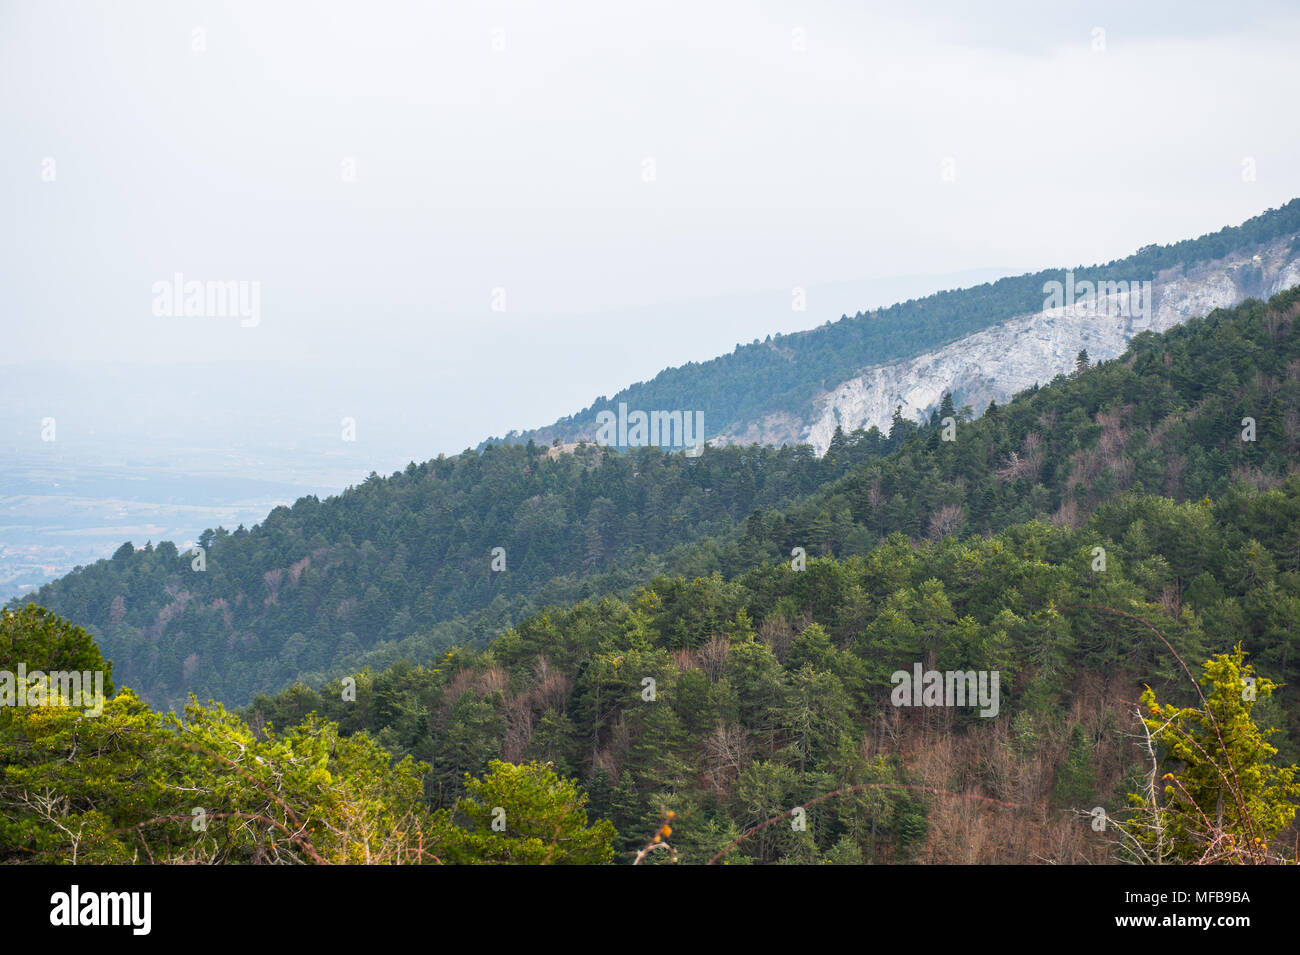 Mount Olympus in Greece. Olympus was the home of the Twelve Olympians Gods in Ancient Greek Mythology - Stock Image